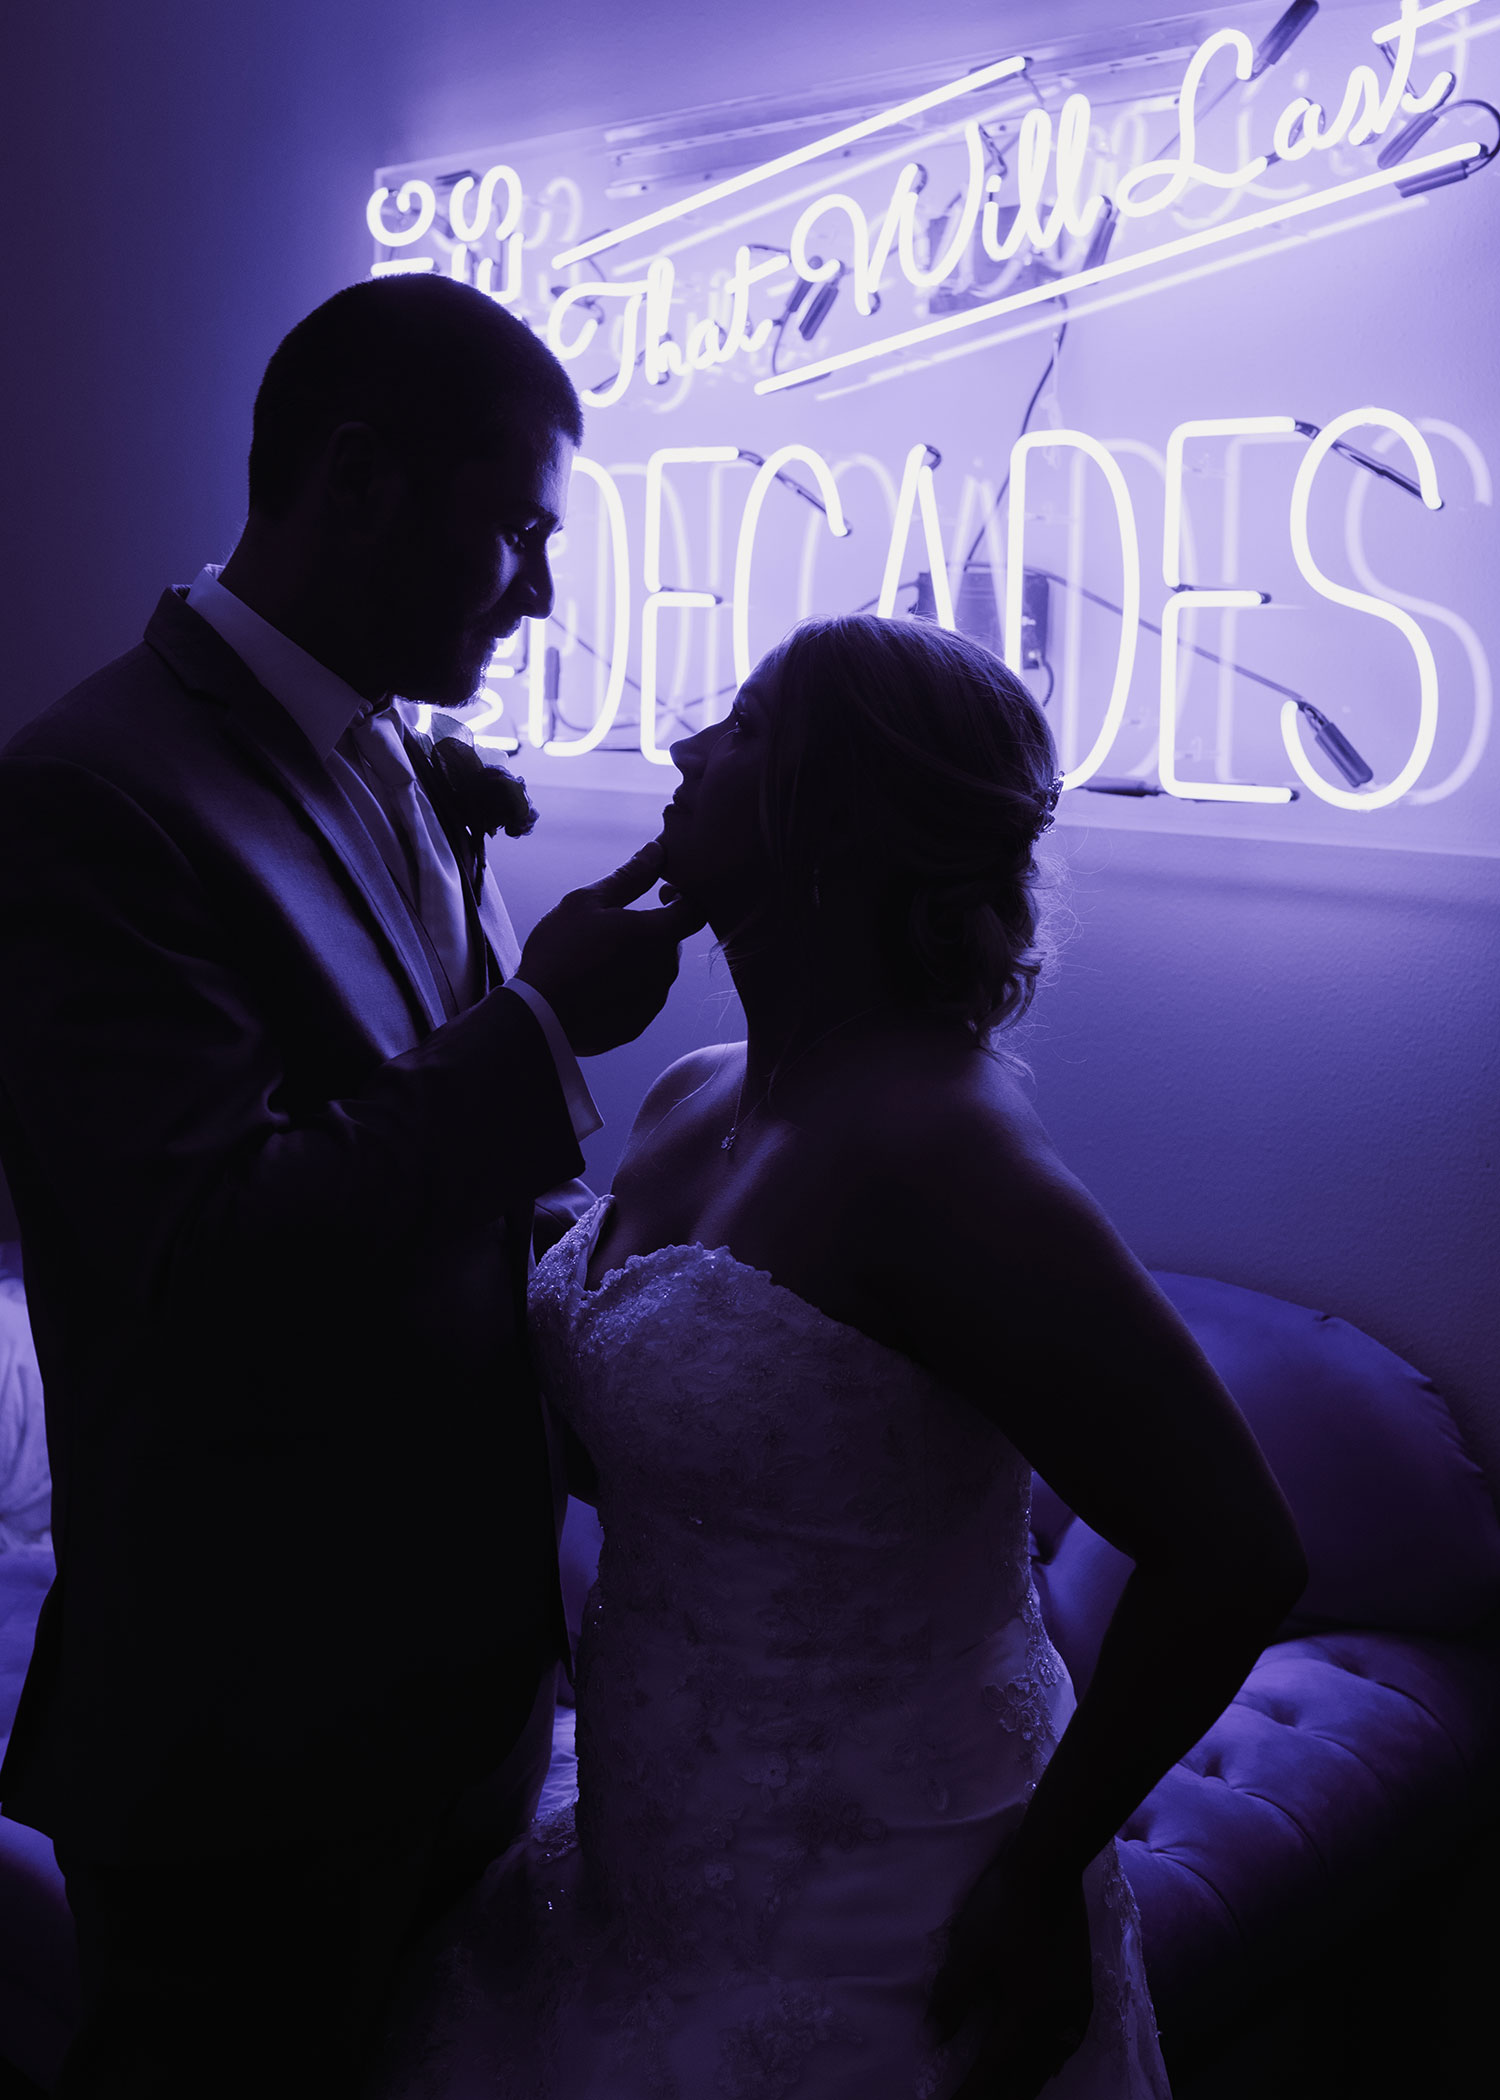 bride-and-groom-looking-at-each-other-in-front-of-neon-sign-decades-event-center-building-desmoines-iowa-raelyn-ramey-photography..jpg